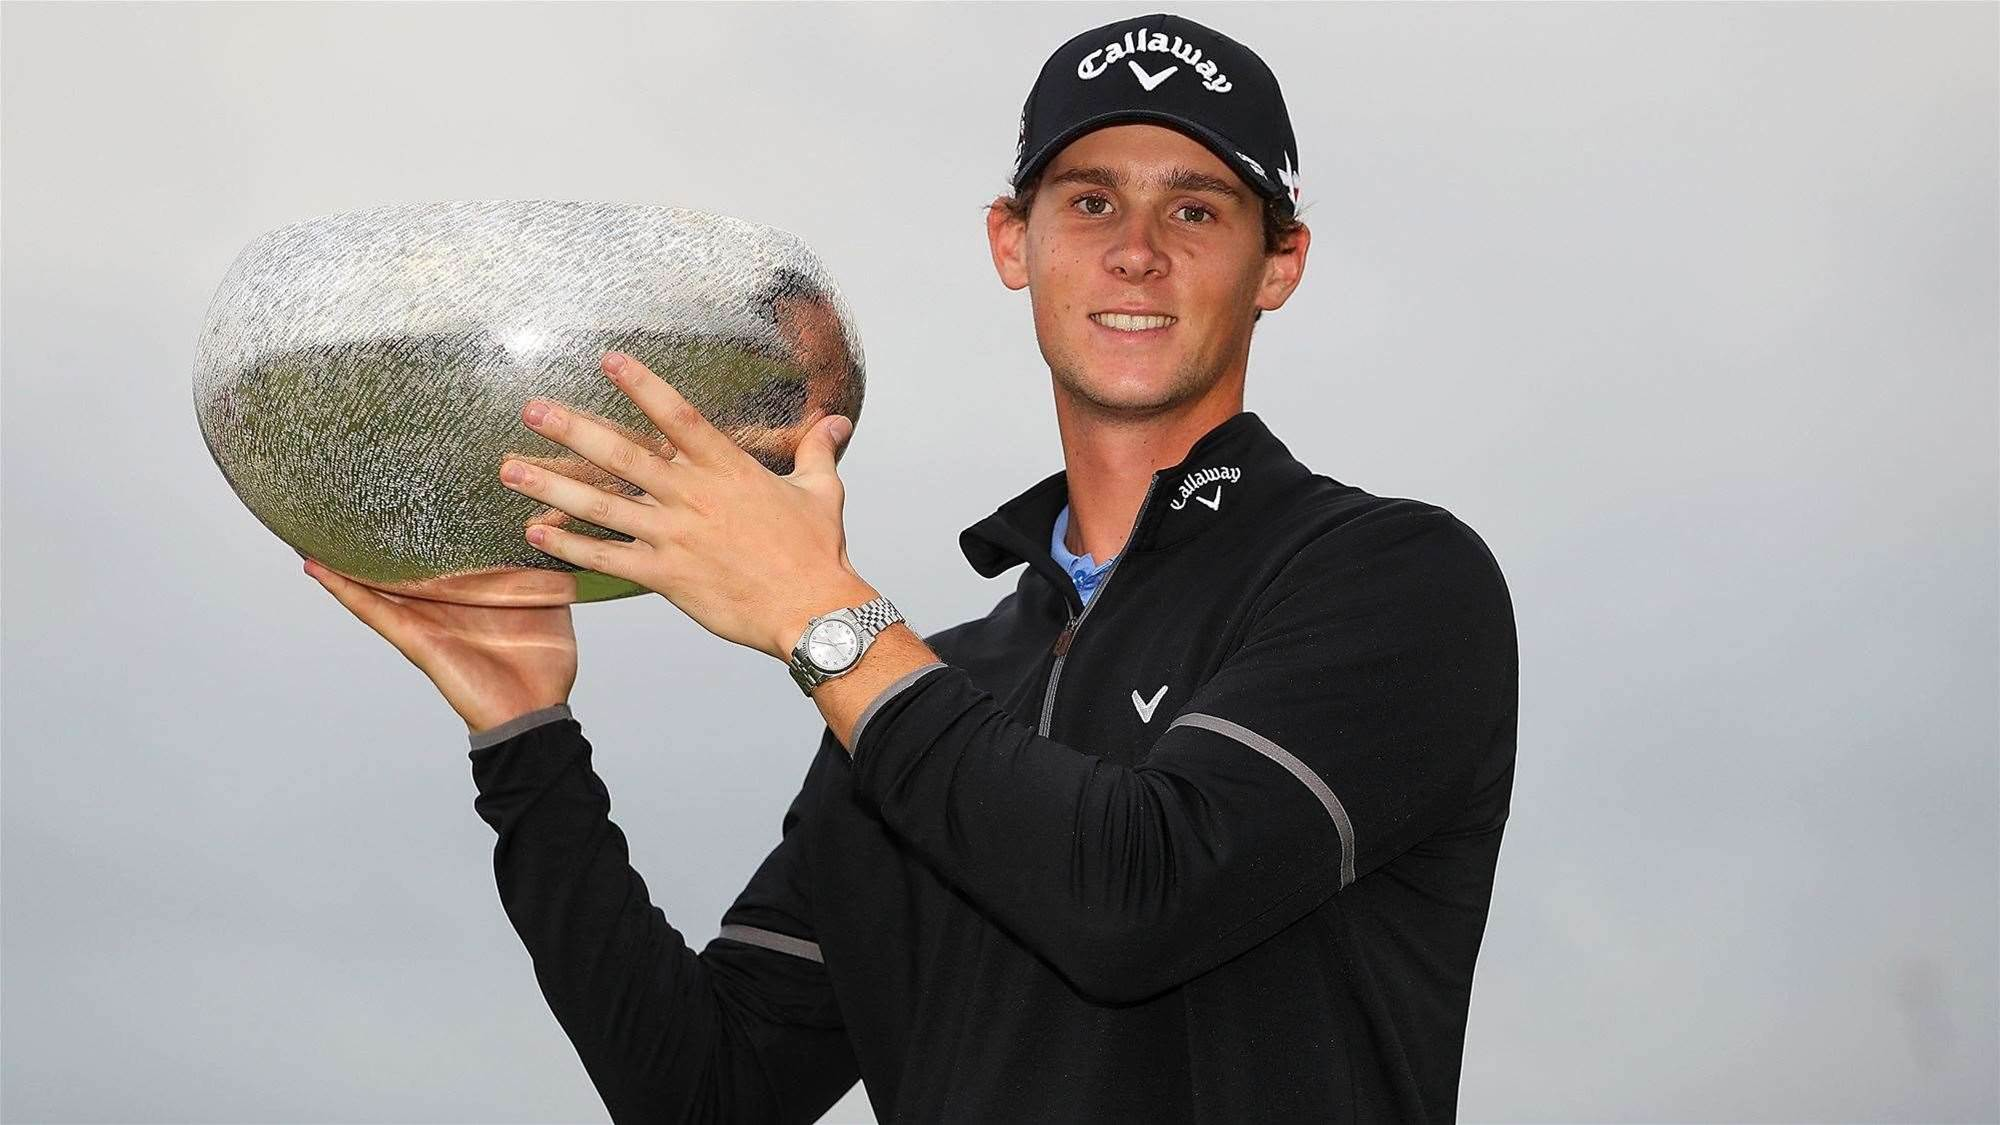 EURO TOUR: Pieters' win puts him in Ryder Cup frame